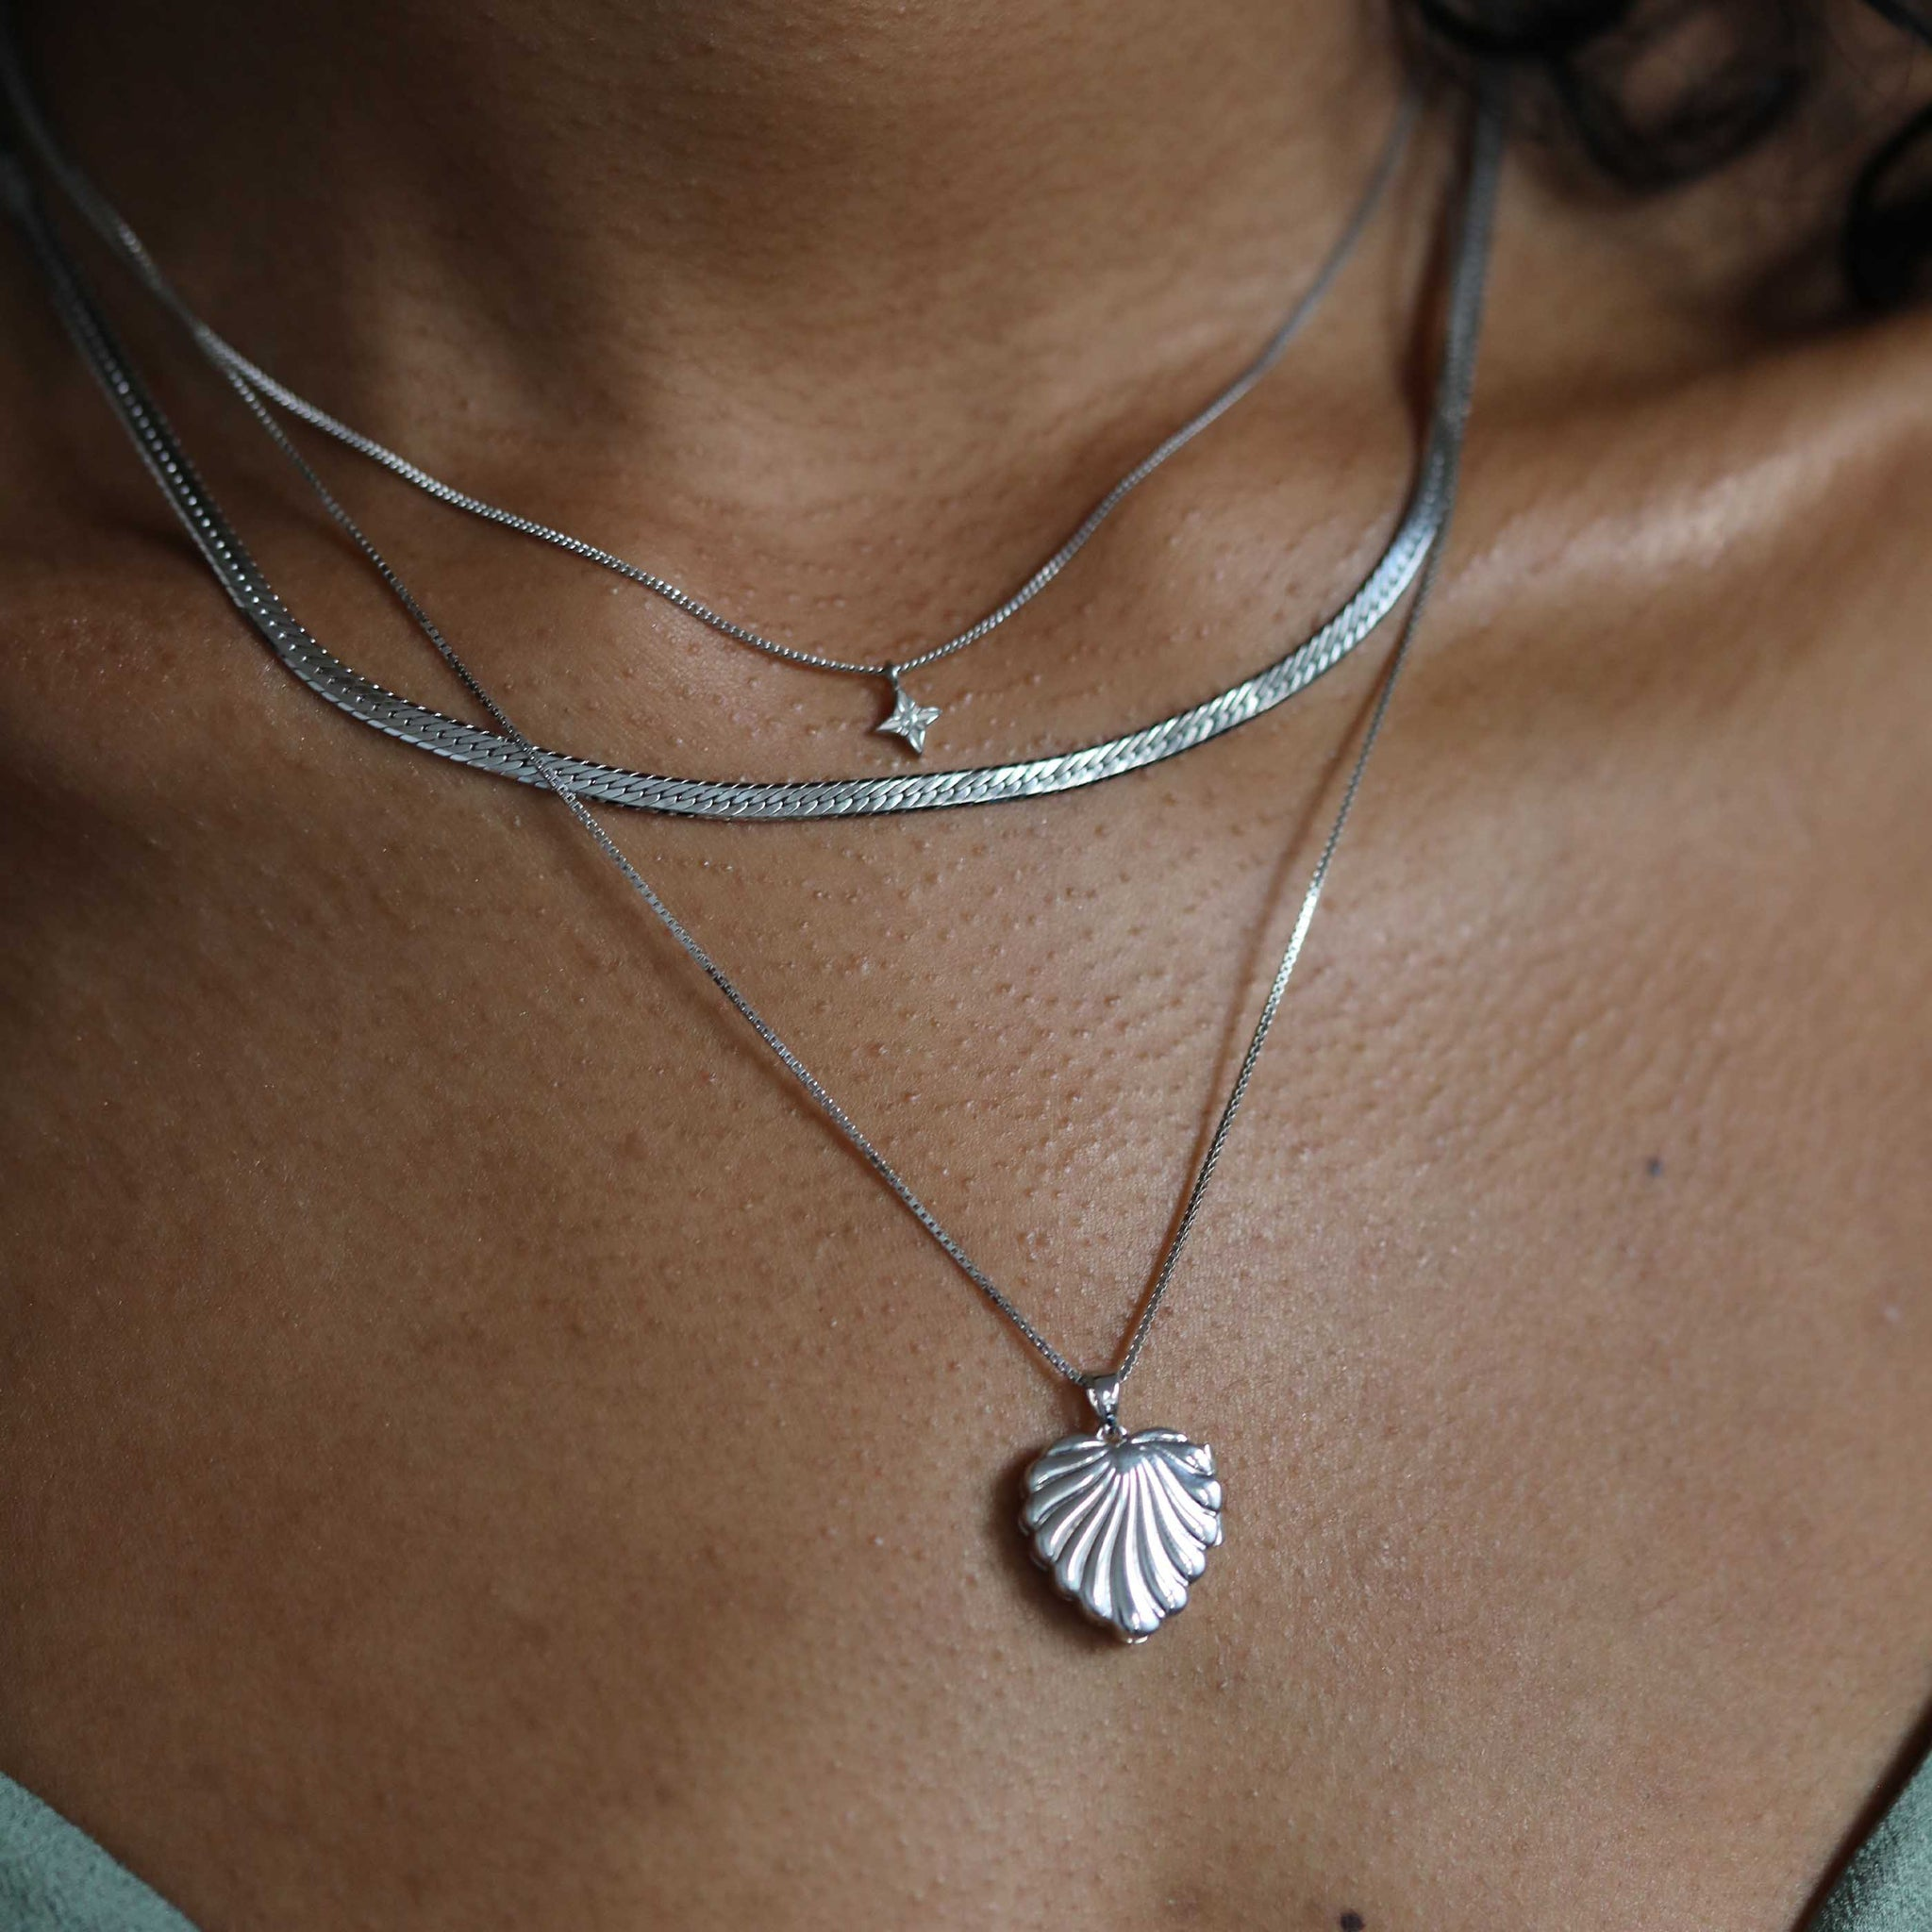 etched star pendant necklace worn with locket